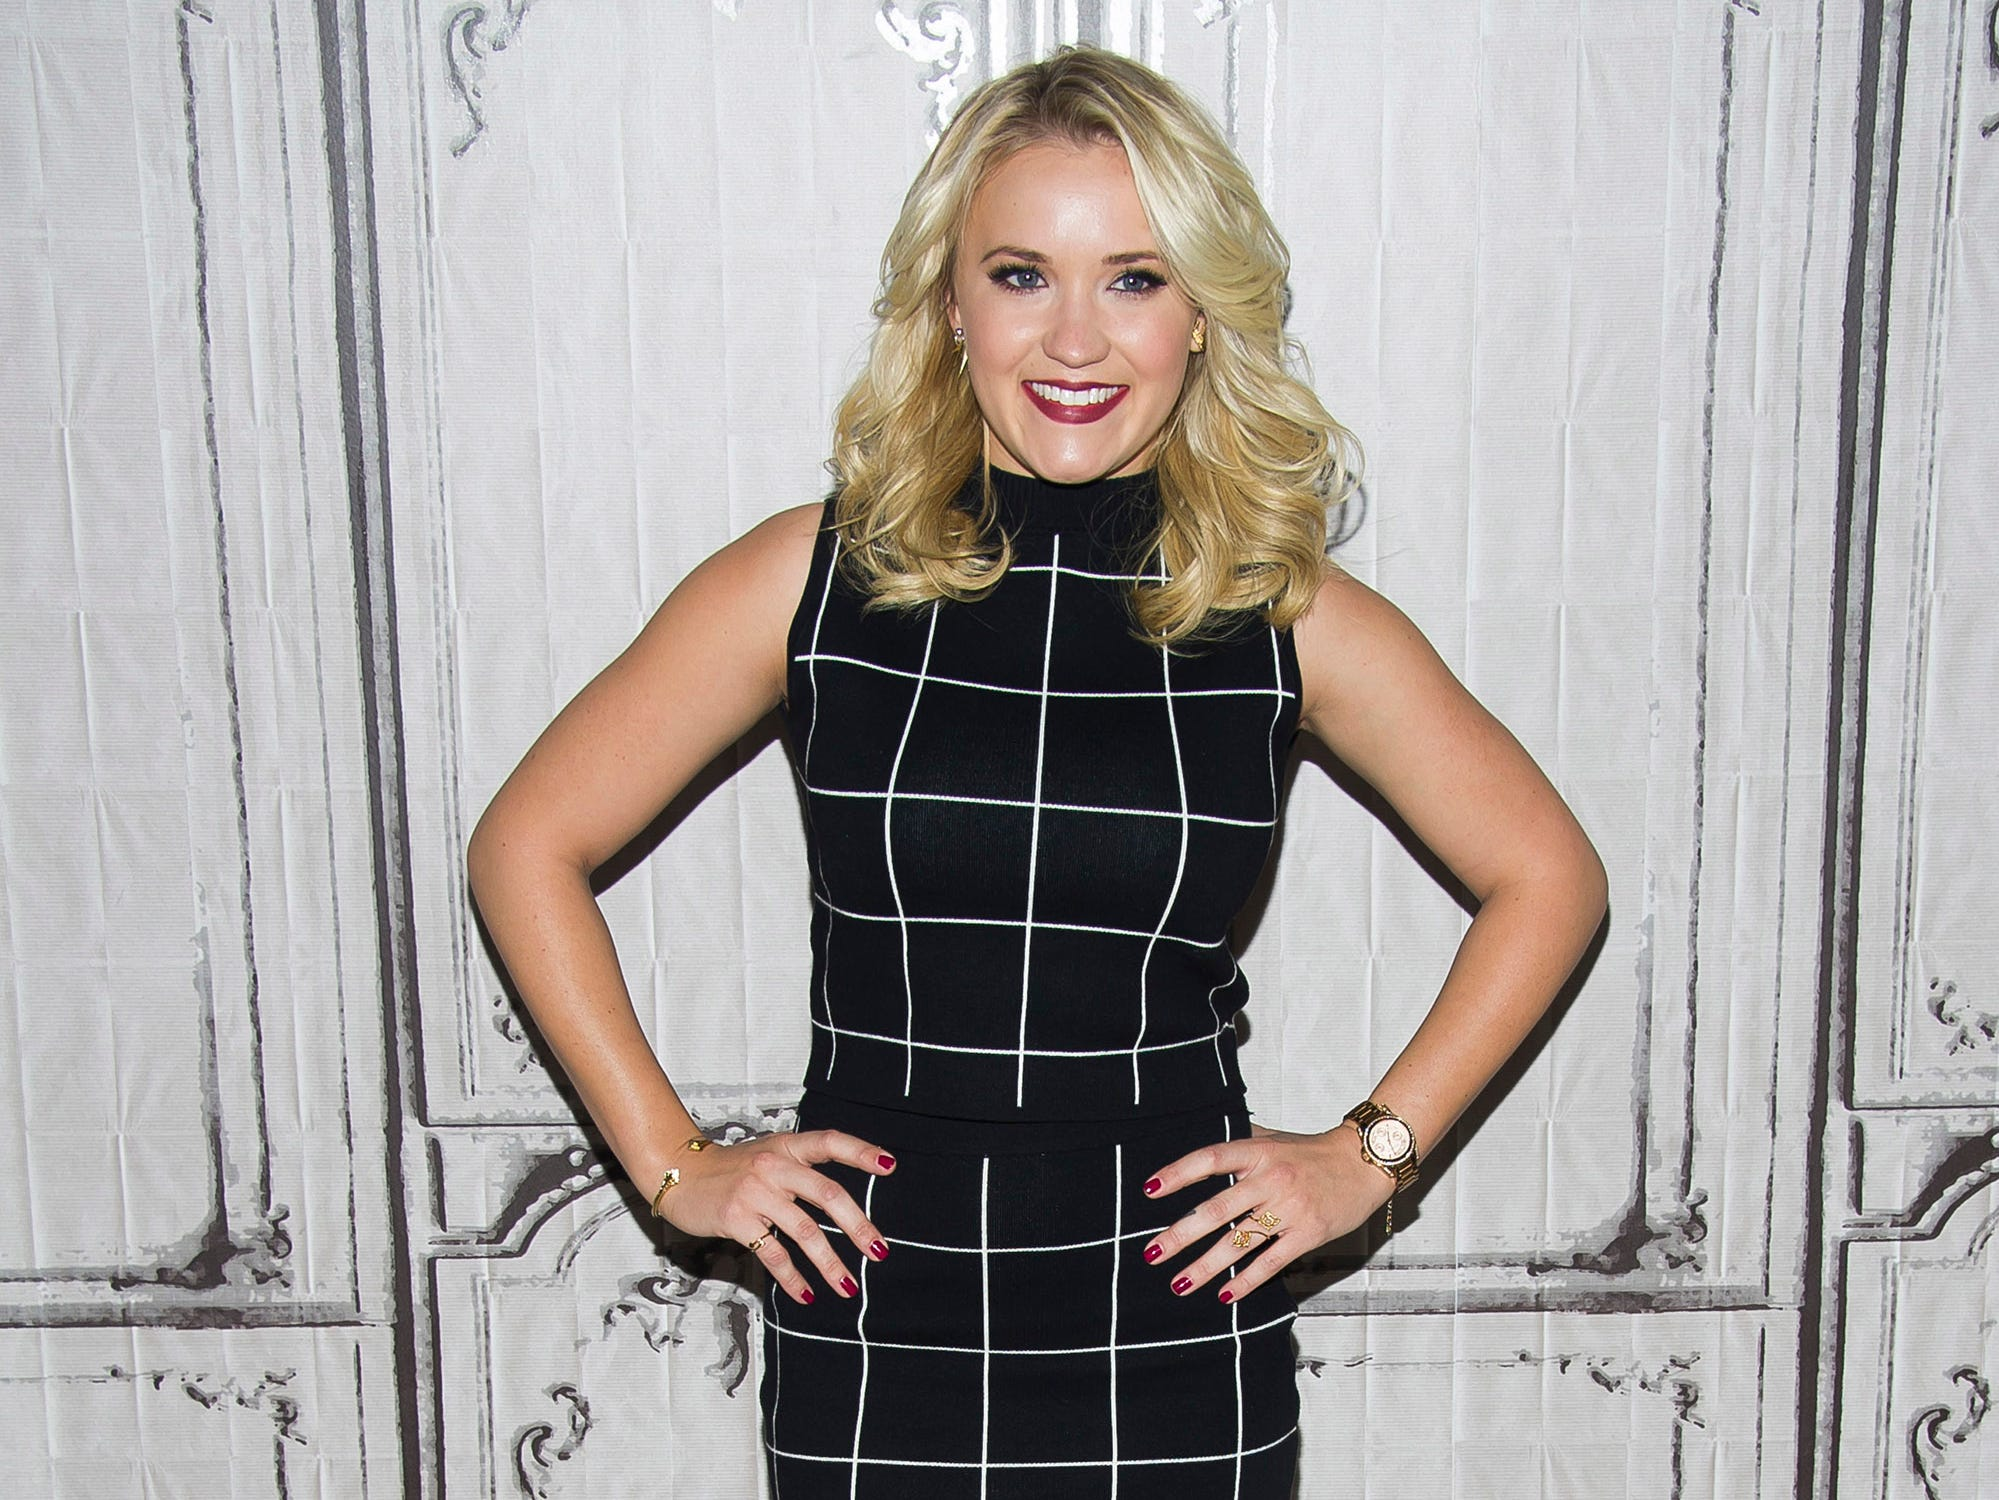 "Actress Emily Osment attends AOL's BUILD Speaker Series to discuss her ABC Family television show ""Young & Hungry"" at AOL Studios on Tuesday, March 24, 2015, in New York. (Photo by Charles Sykes/Invision/AP) ORG XMIT: NYCS101"